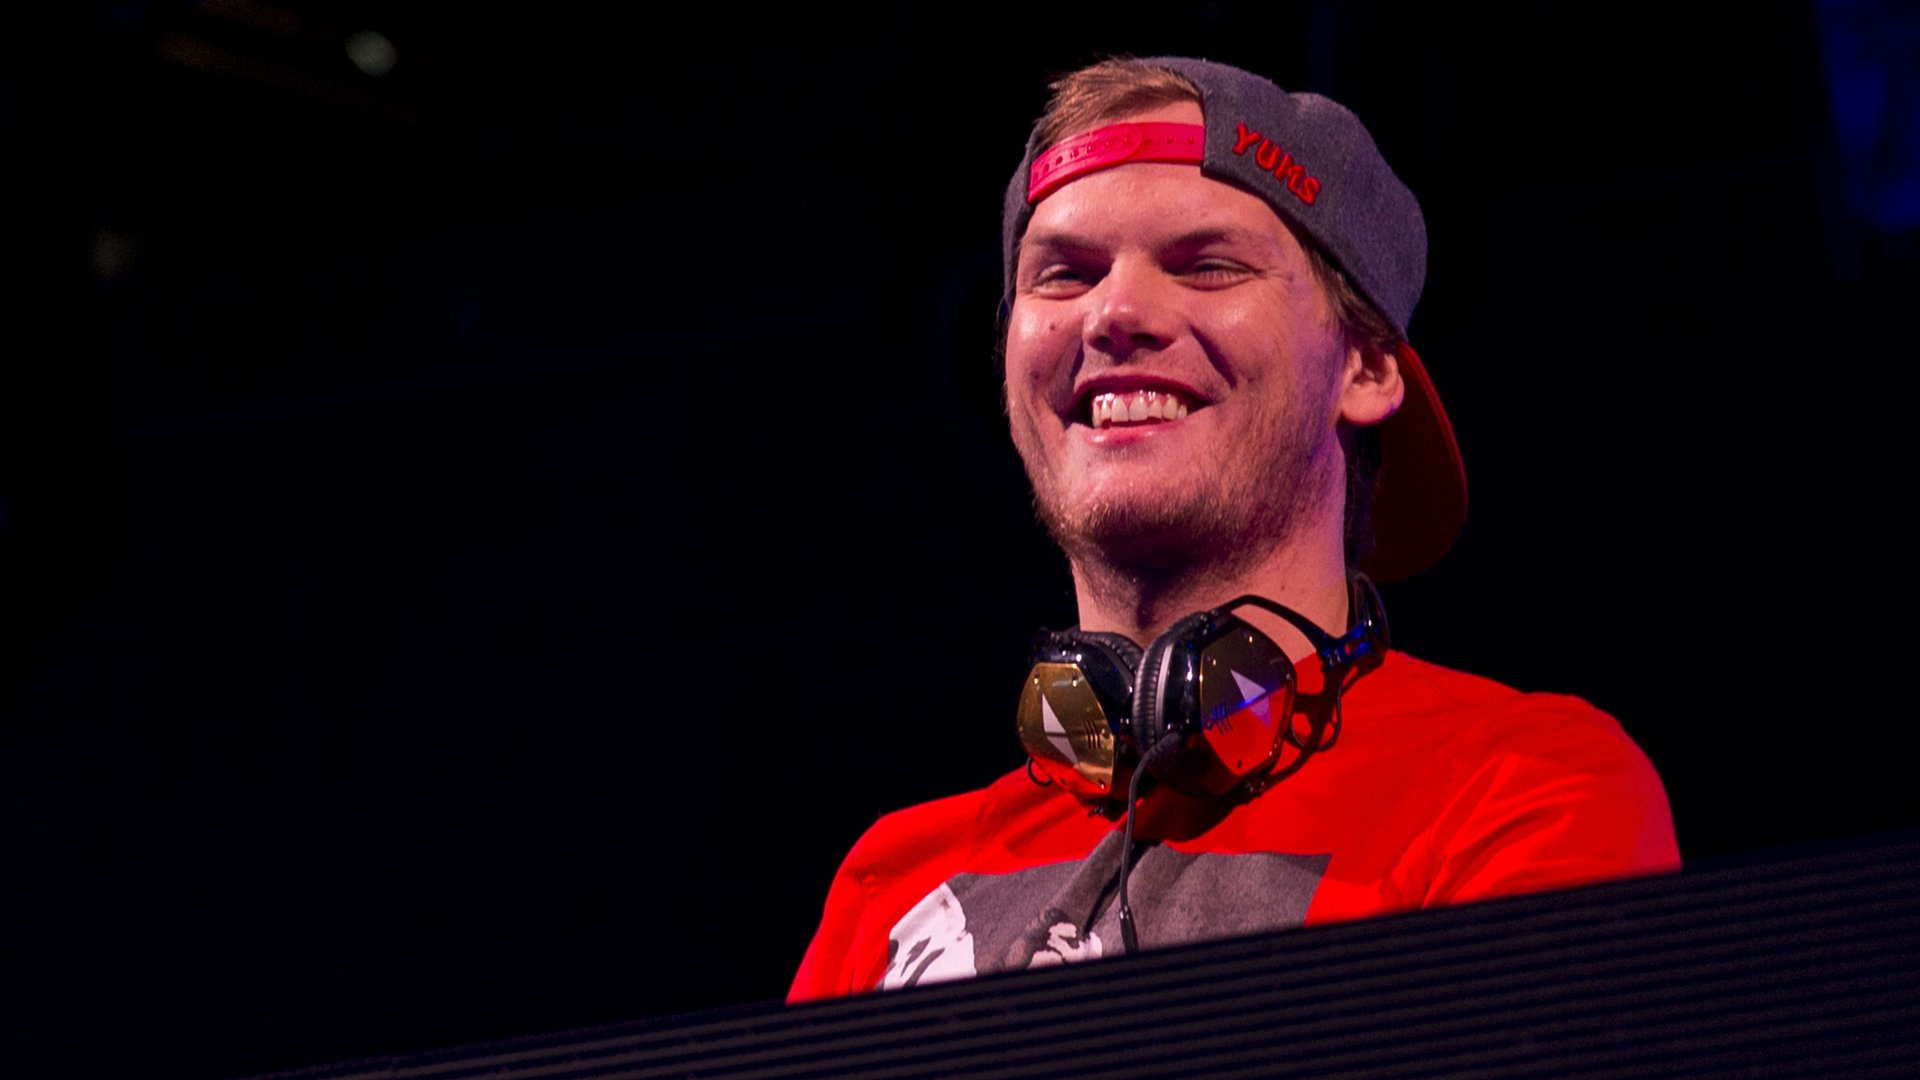 DJ and producer Avicii died today at the age of 28 https://t.co/1cIZtmwthl https://t.co/wLNfvK6dWN